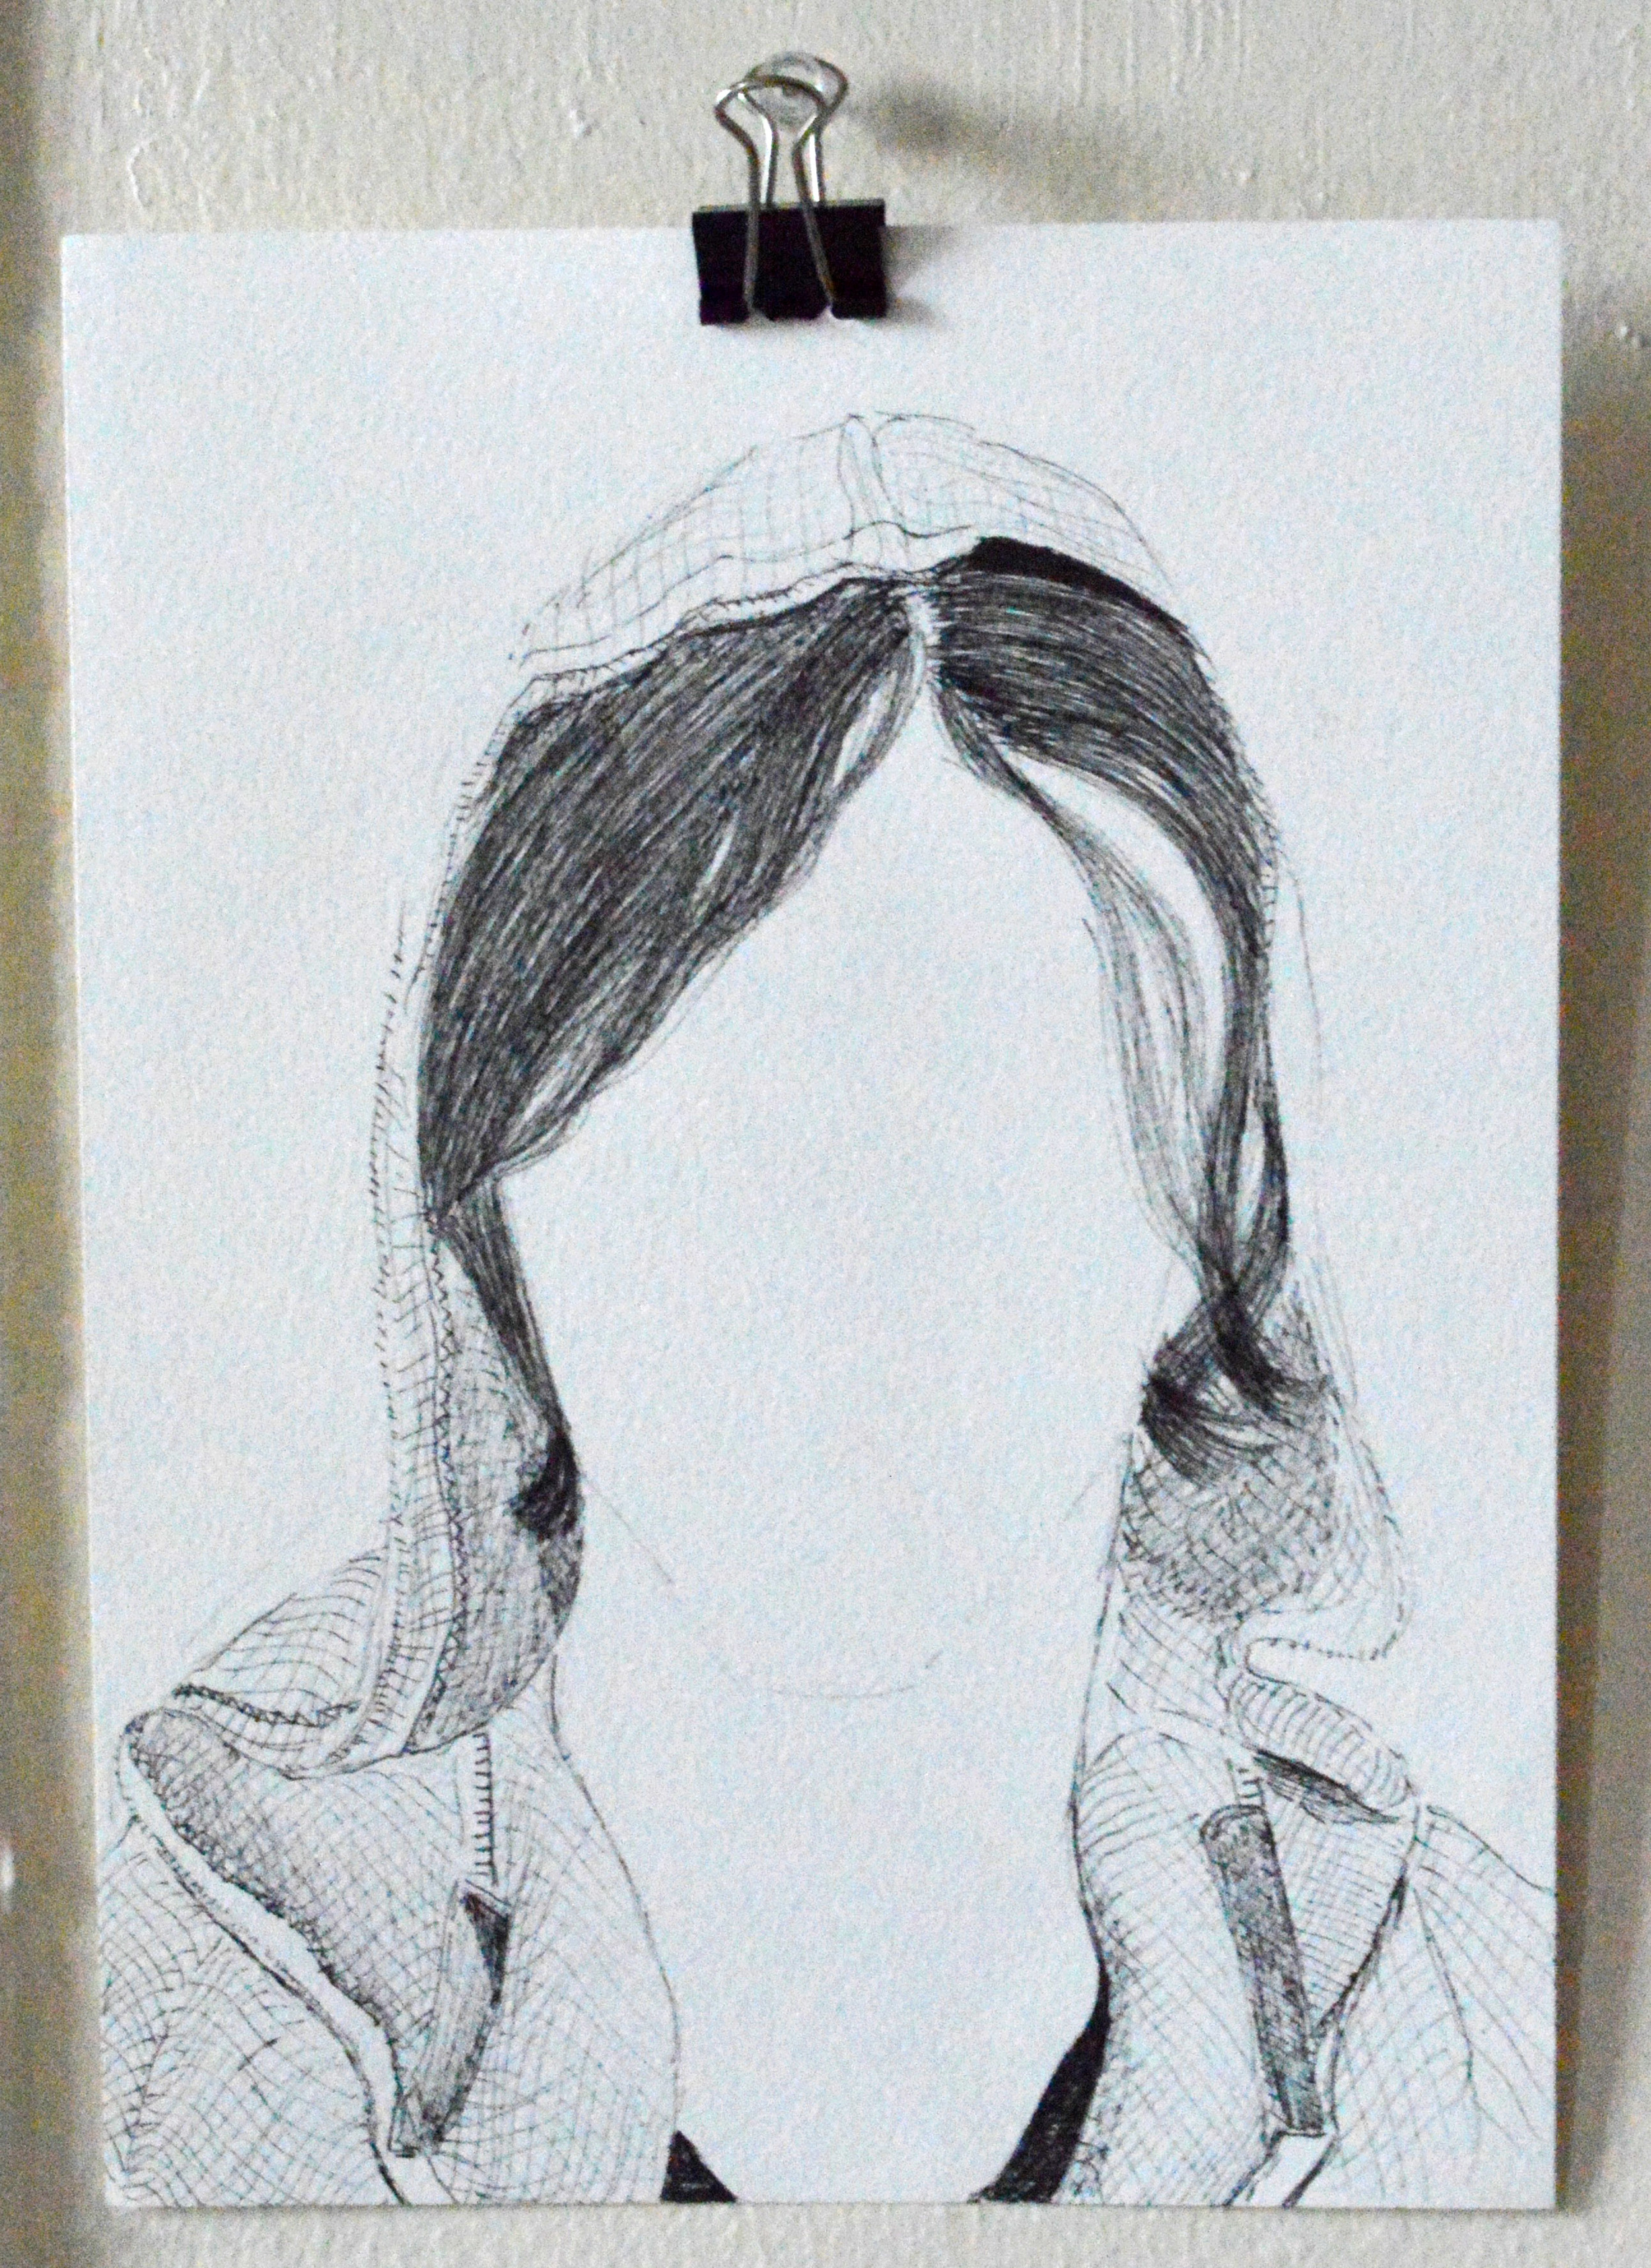 Hanging in the Va, Girls without Faces by Keke Brown